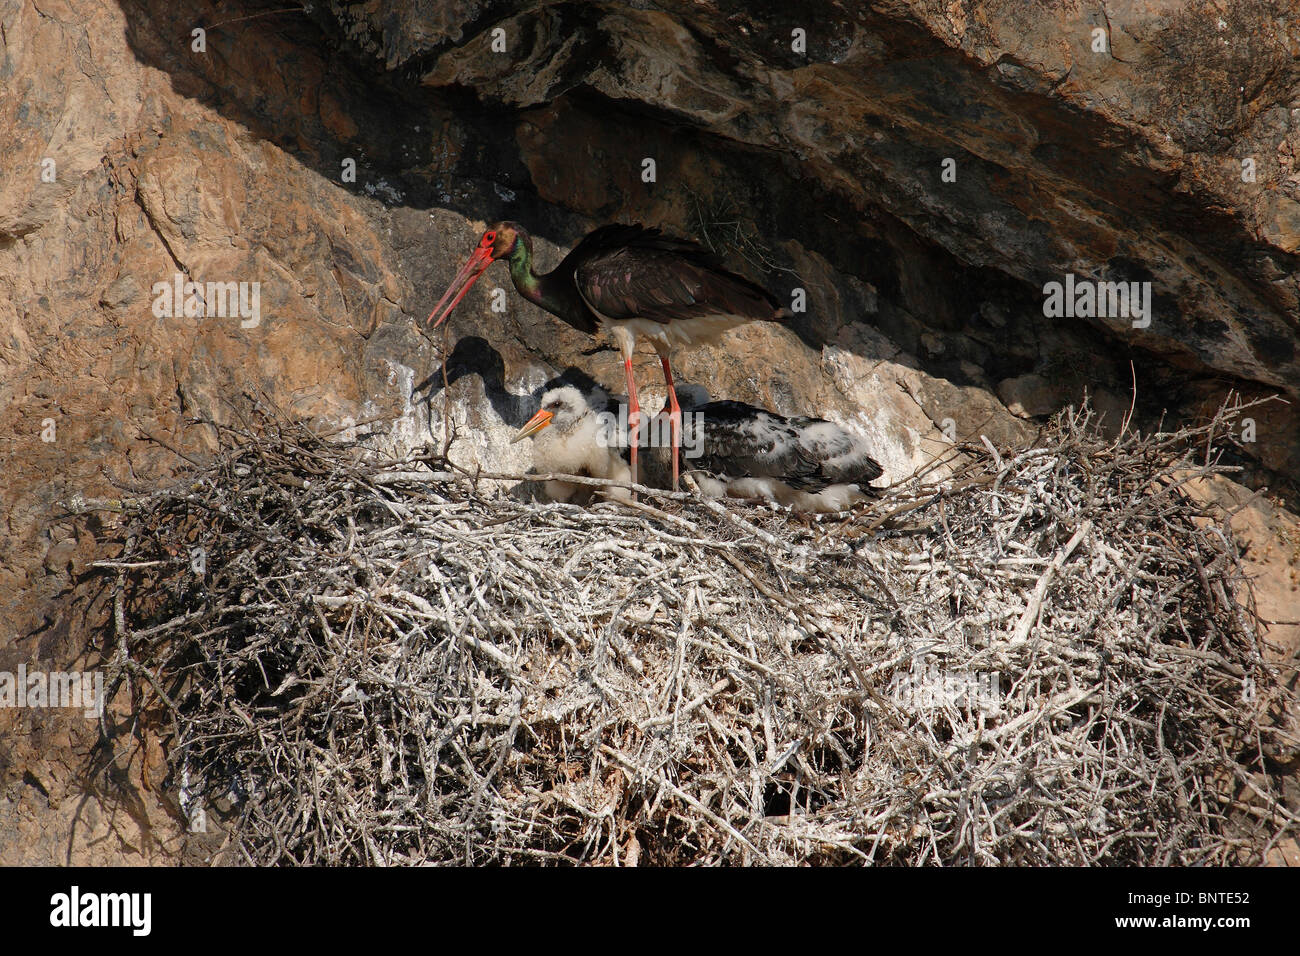 Black Stork (Ciconia nigra), adult with chicks at nest. - Stock Image